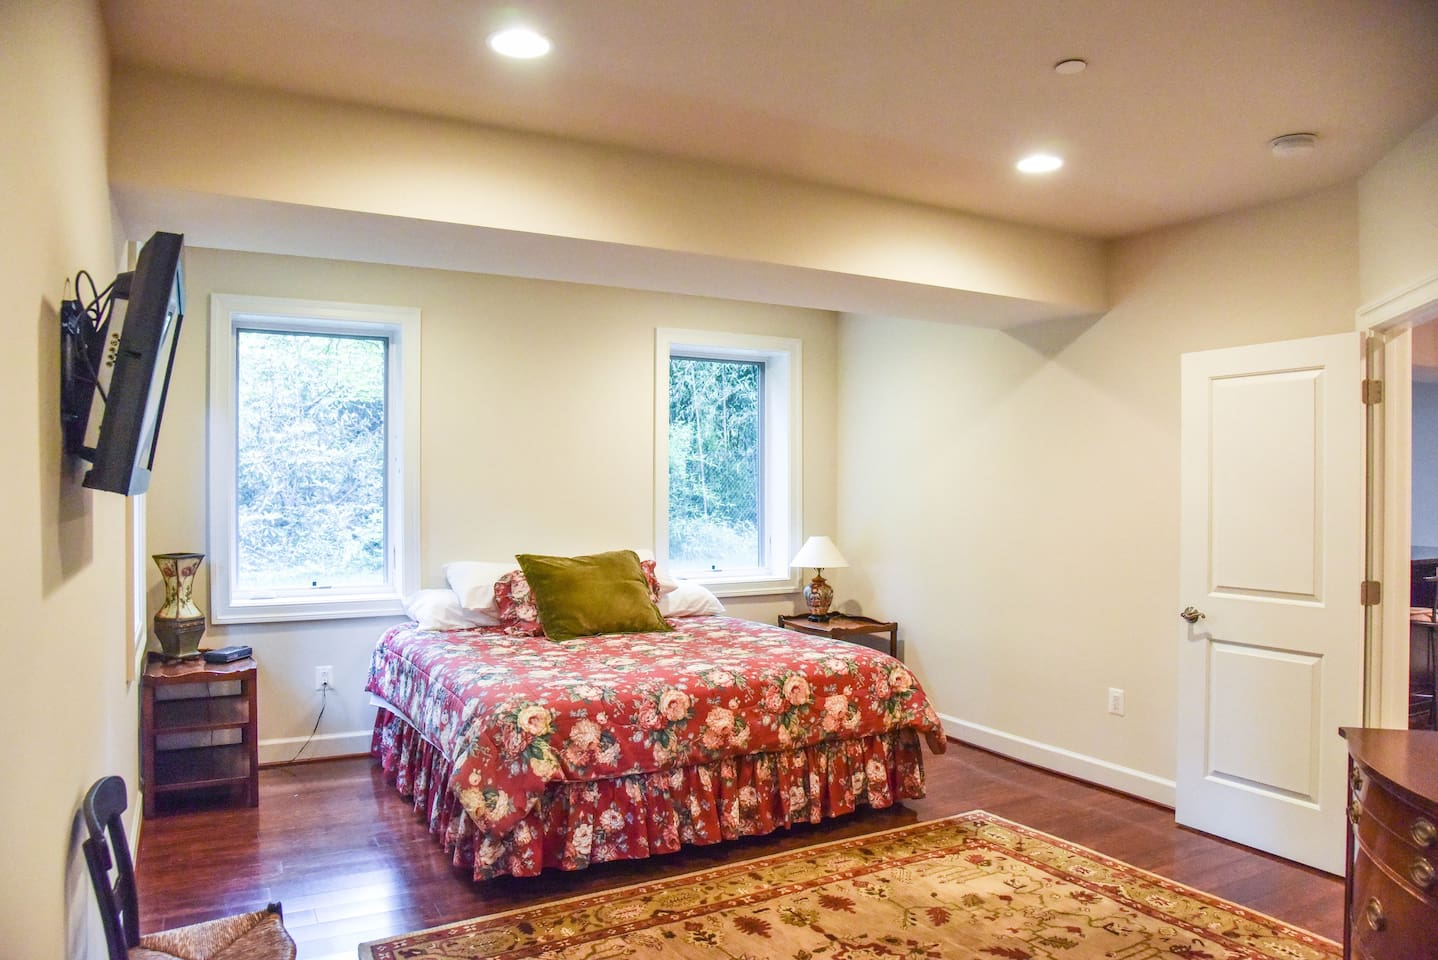 Private Room with King size bed, Shared Bath in 3500 SqFt Suite.